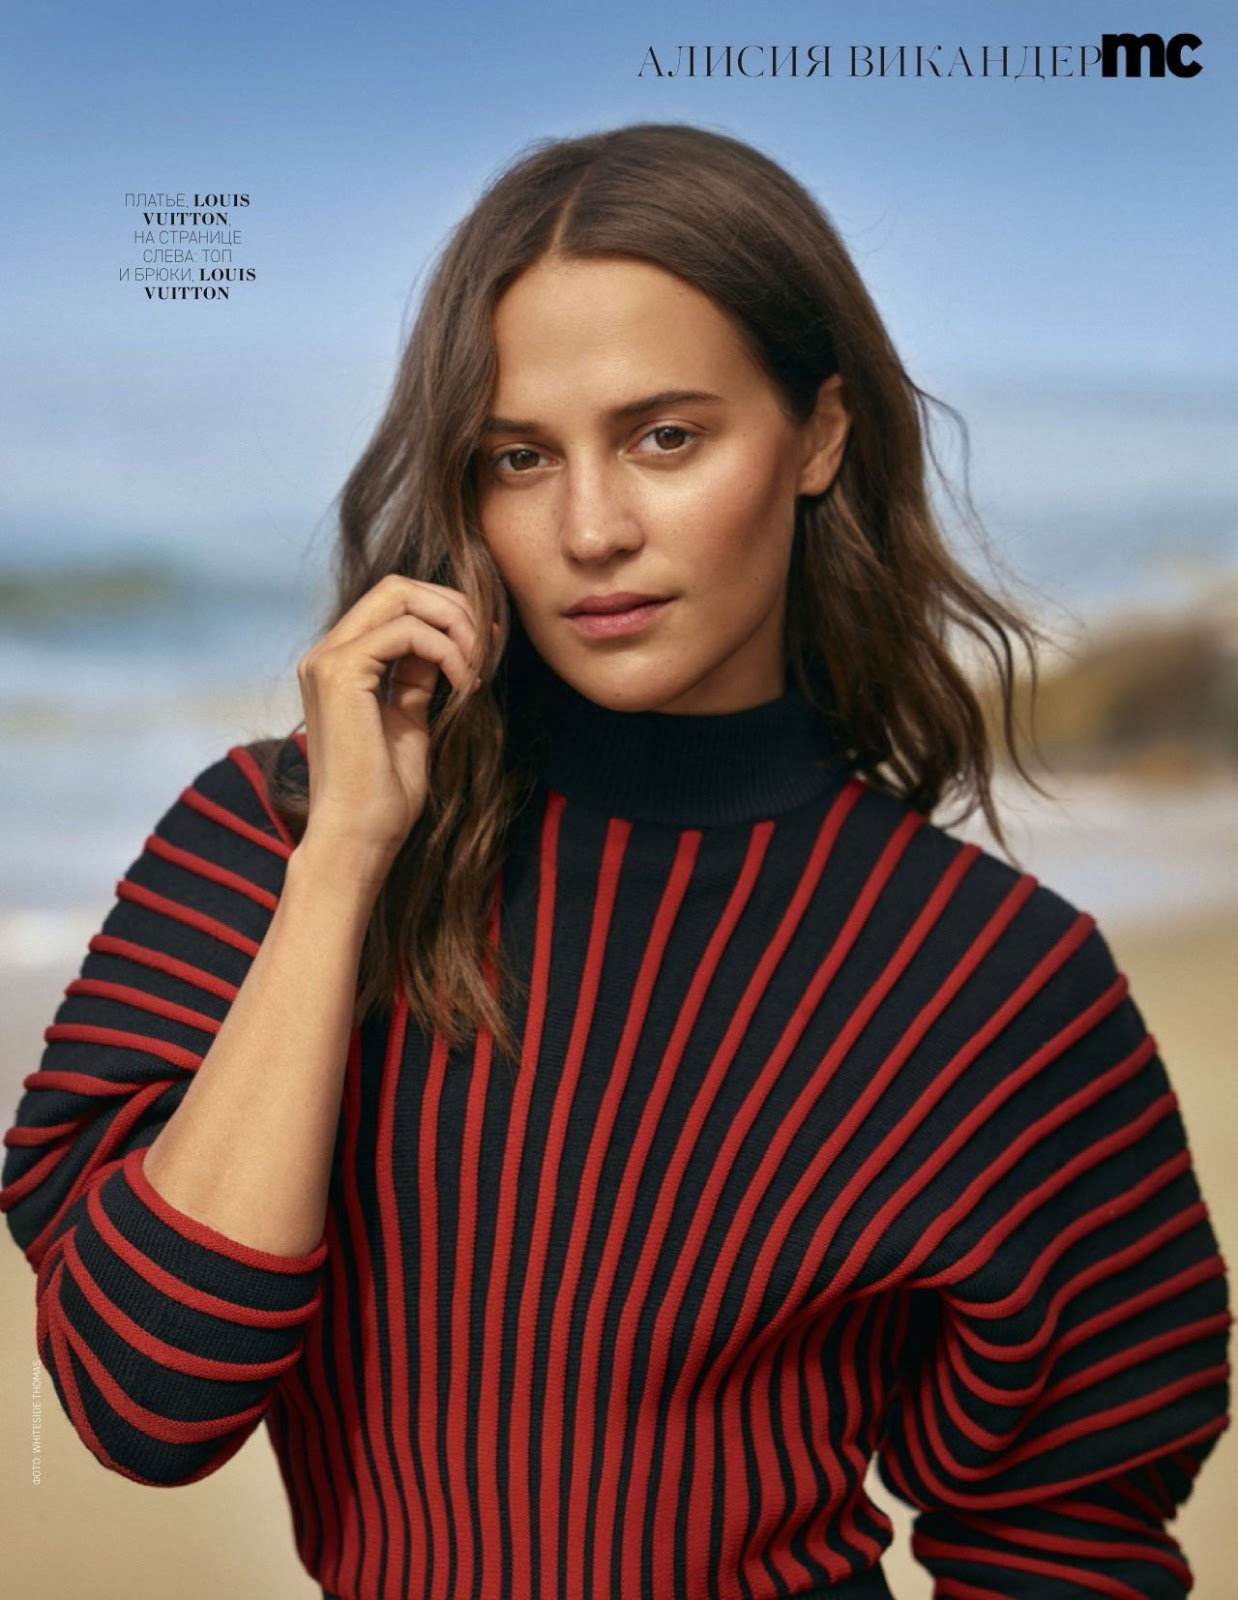 Ambyr Reyes alicia vikander – marie claire russia january 2019 issue